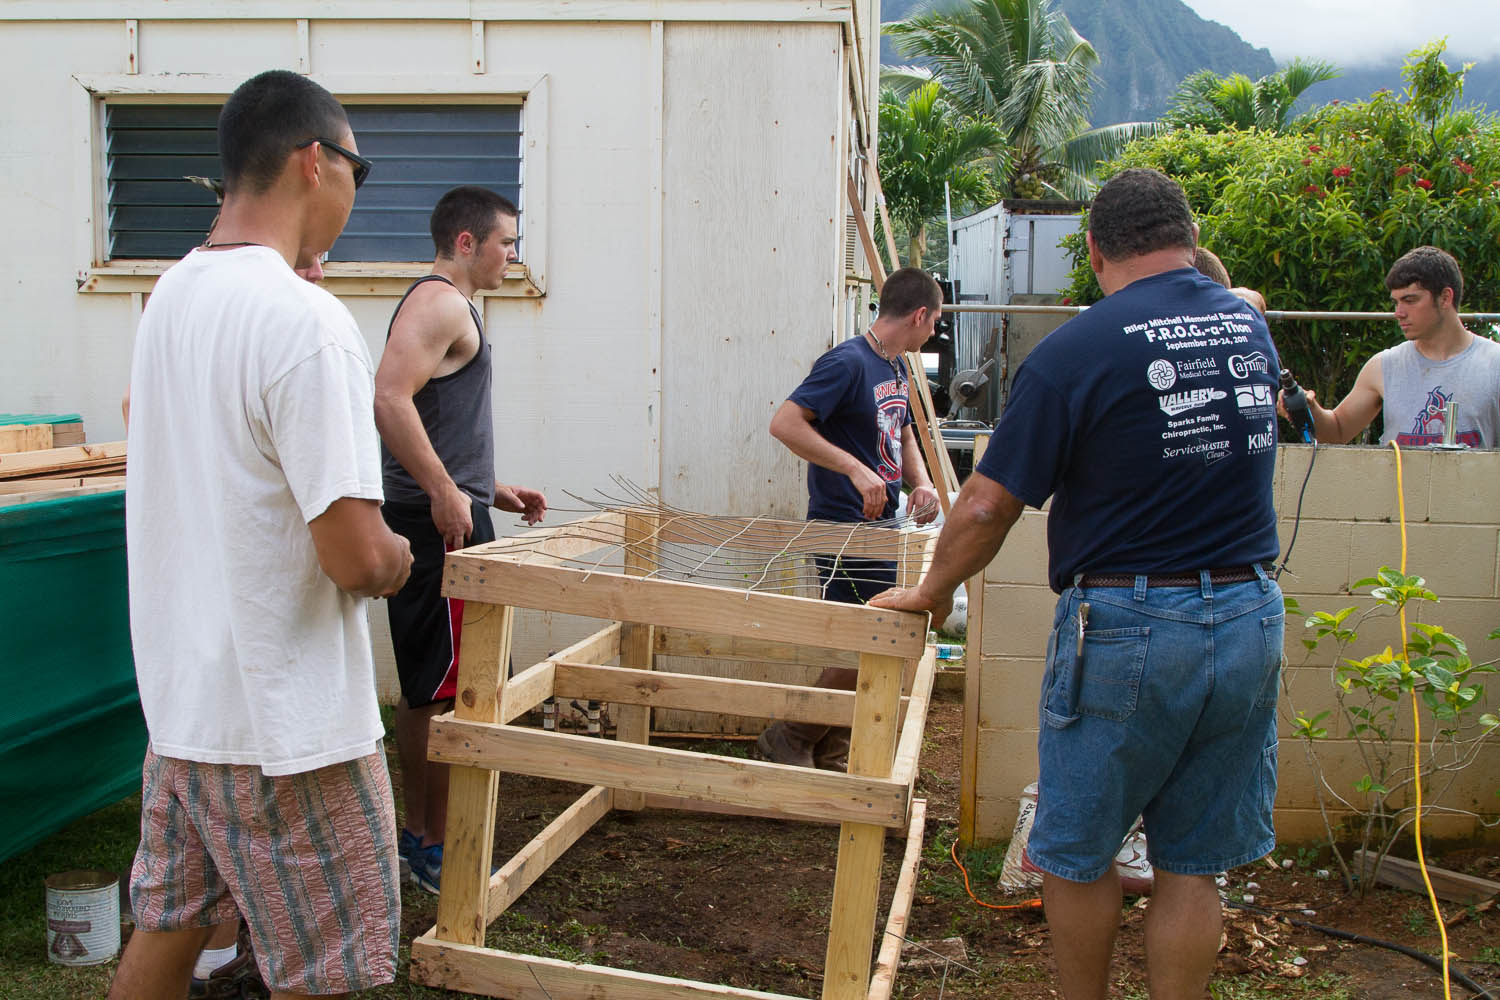 The men are working on constructing a chicken coop for the school.  Eggs are expensive (along with everything else).  This will help reduce the costs for the school.